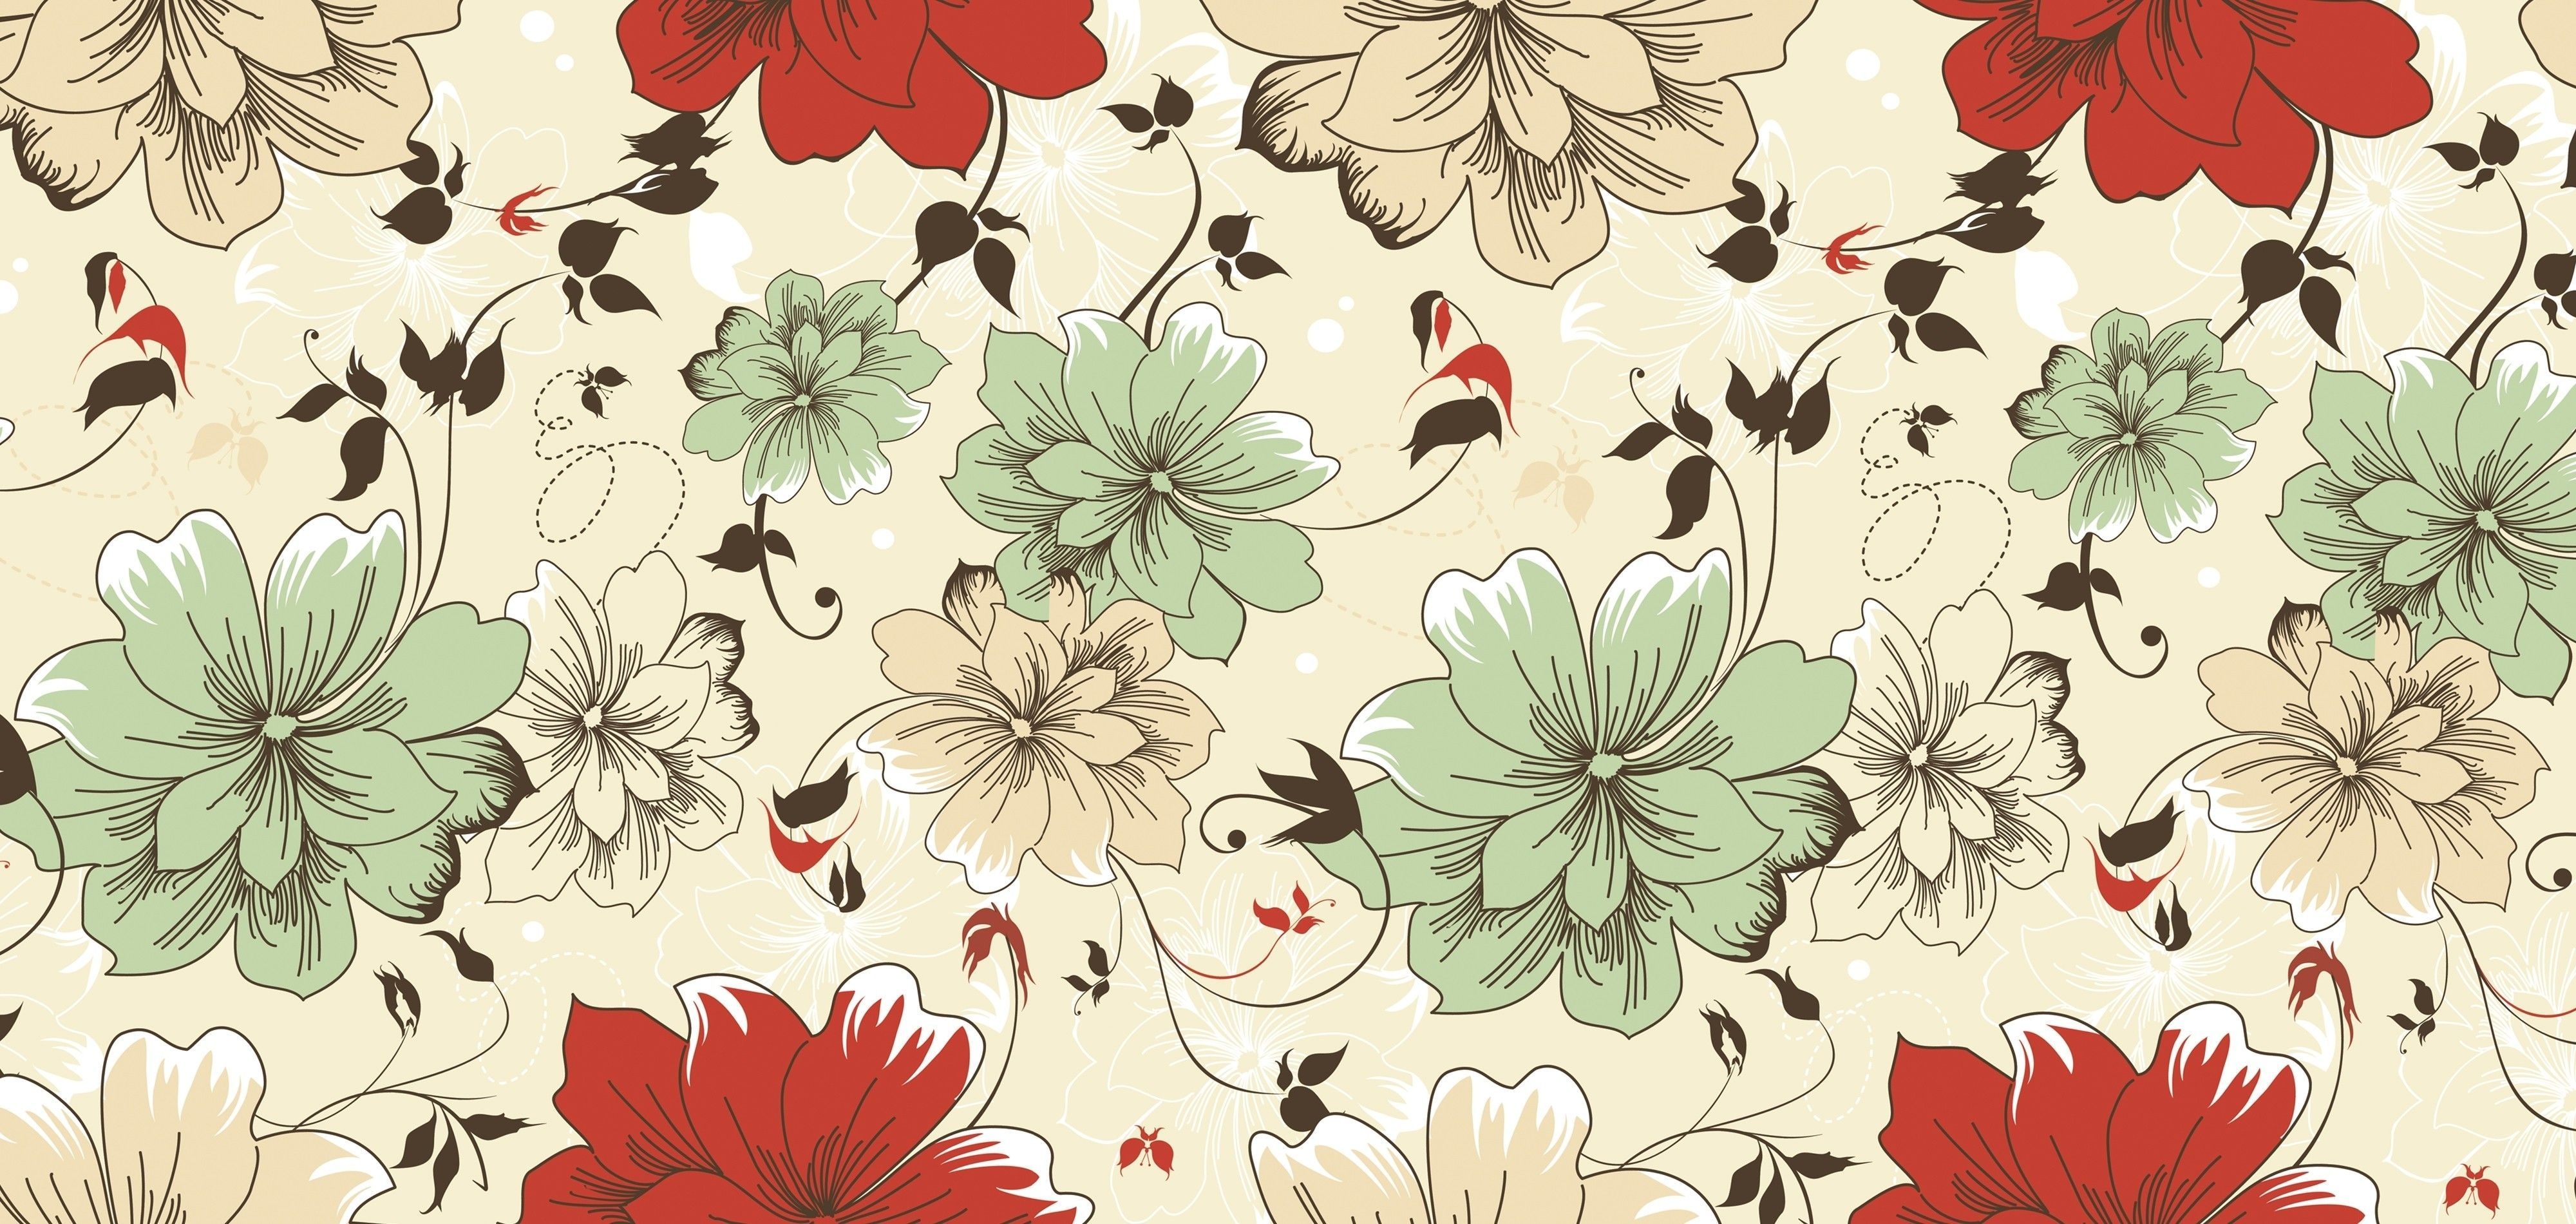 Hd Floral Wallpapers Top Free Hd Floral Backgrounds